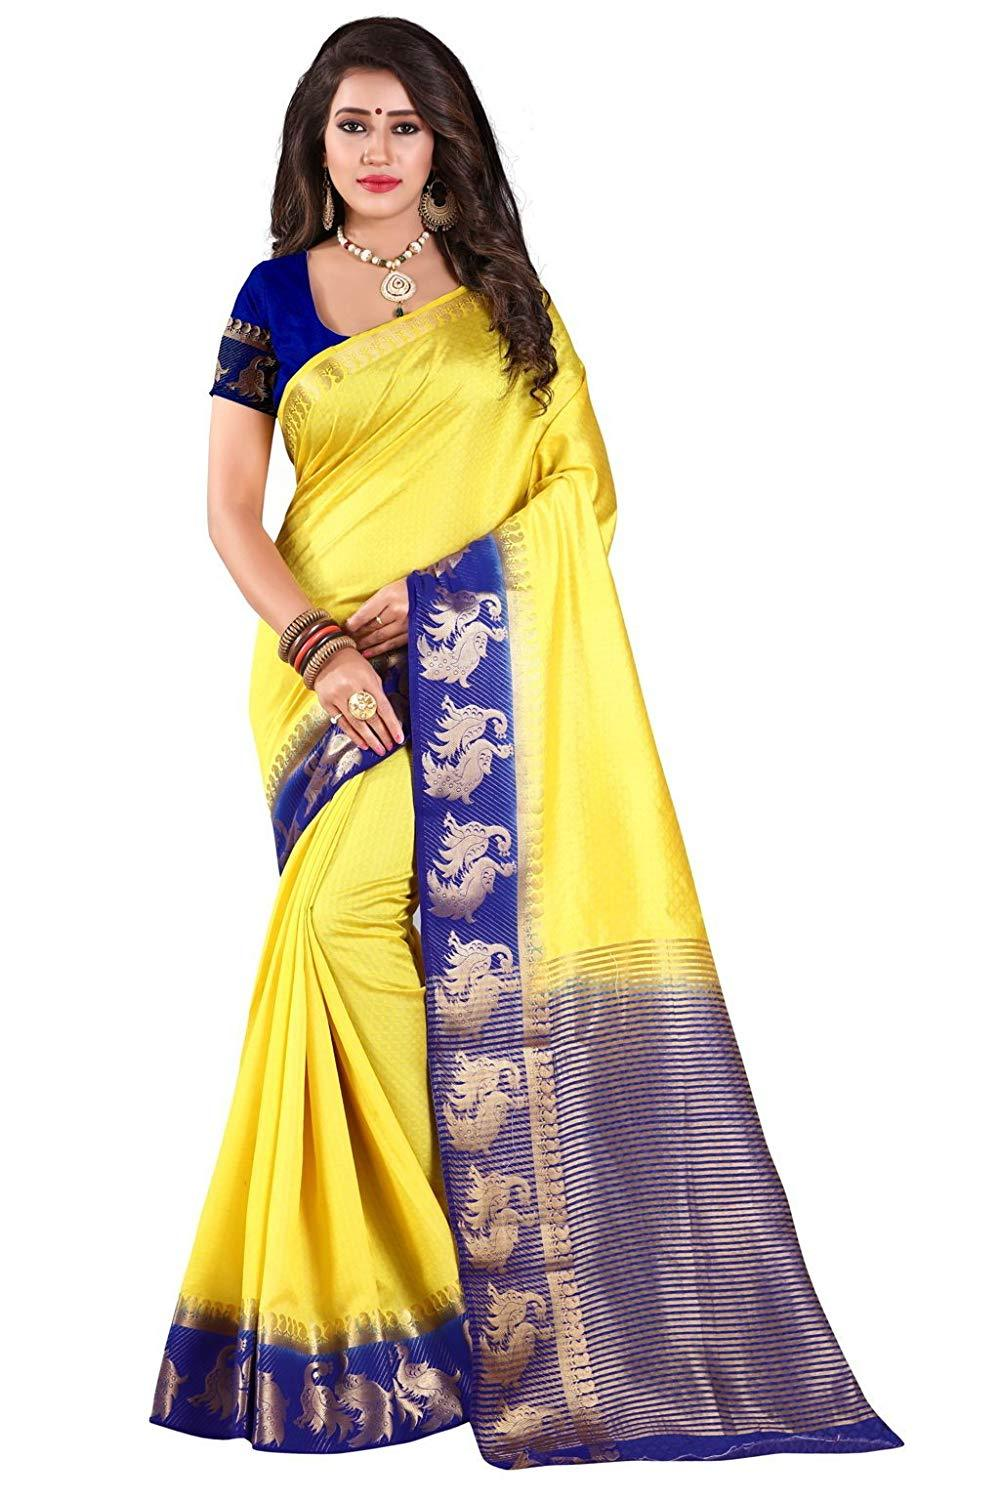 653664fdec6 Yellow and Blue Color Kanjivaram Silk Saree - YELLOW BLUE